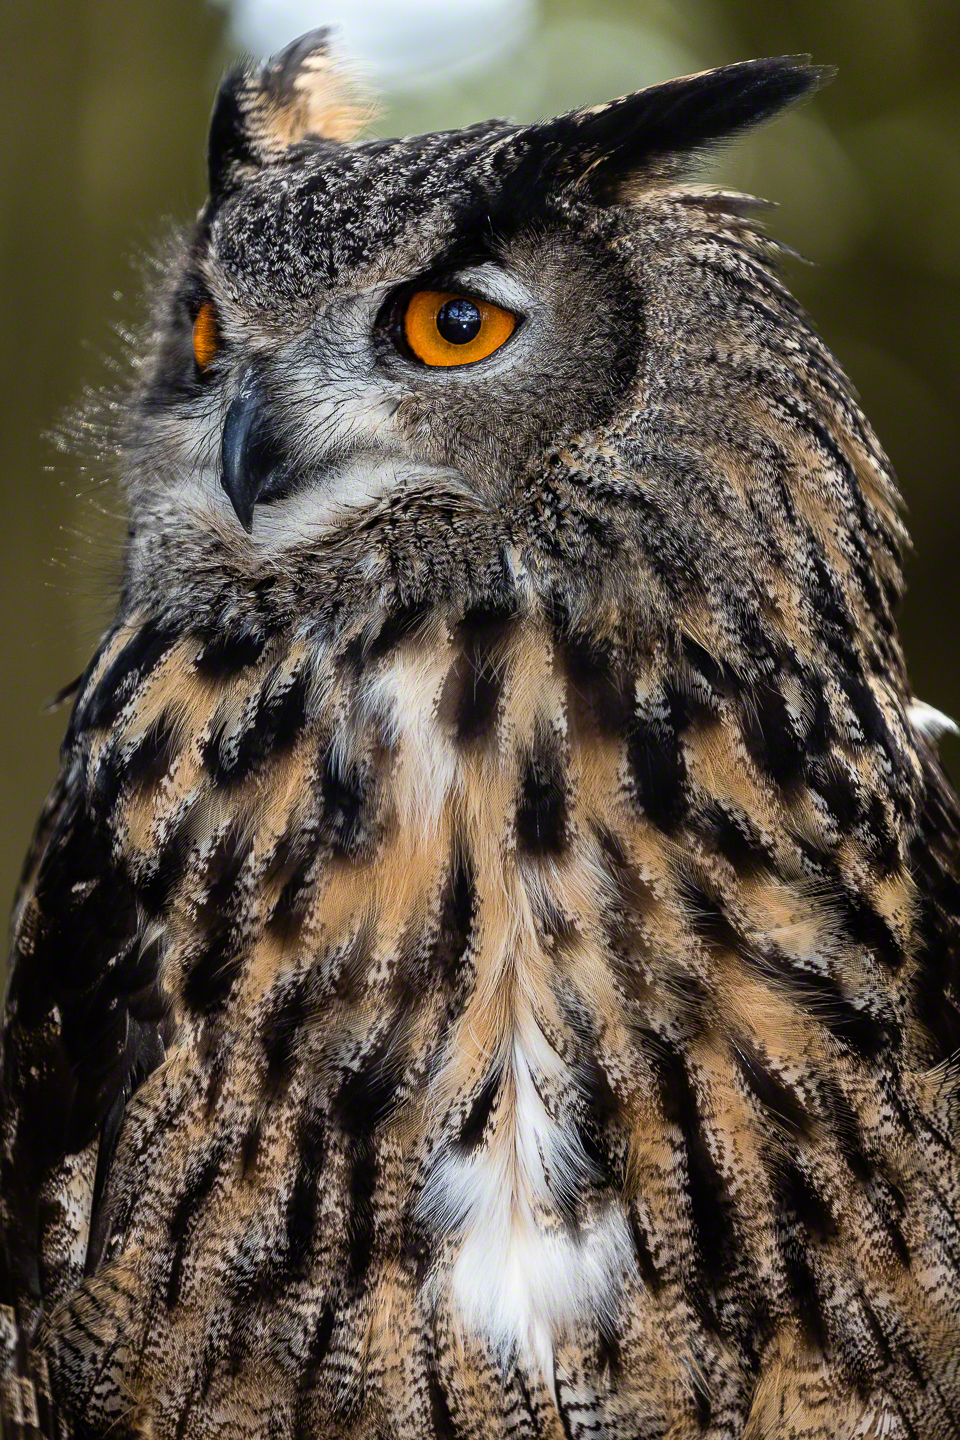 The eyes and plumage of this Siberian Eagle Owl really pop. Done with flash over ambient light. TTL flash, flash exposure compensation - ⅔ stop